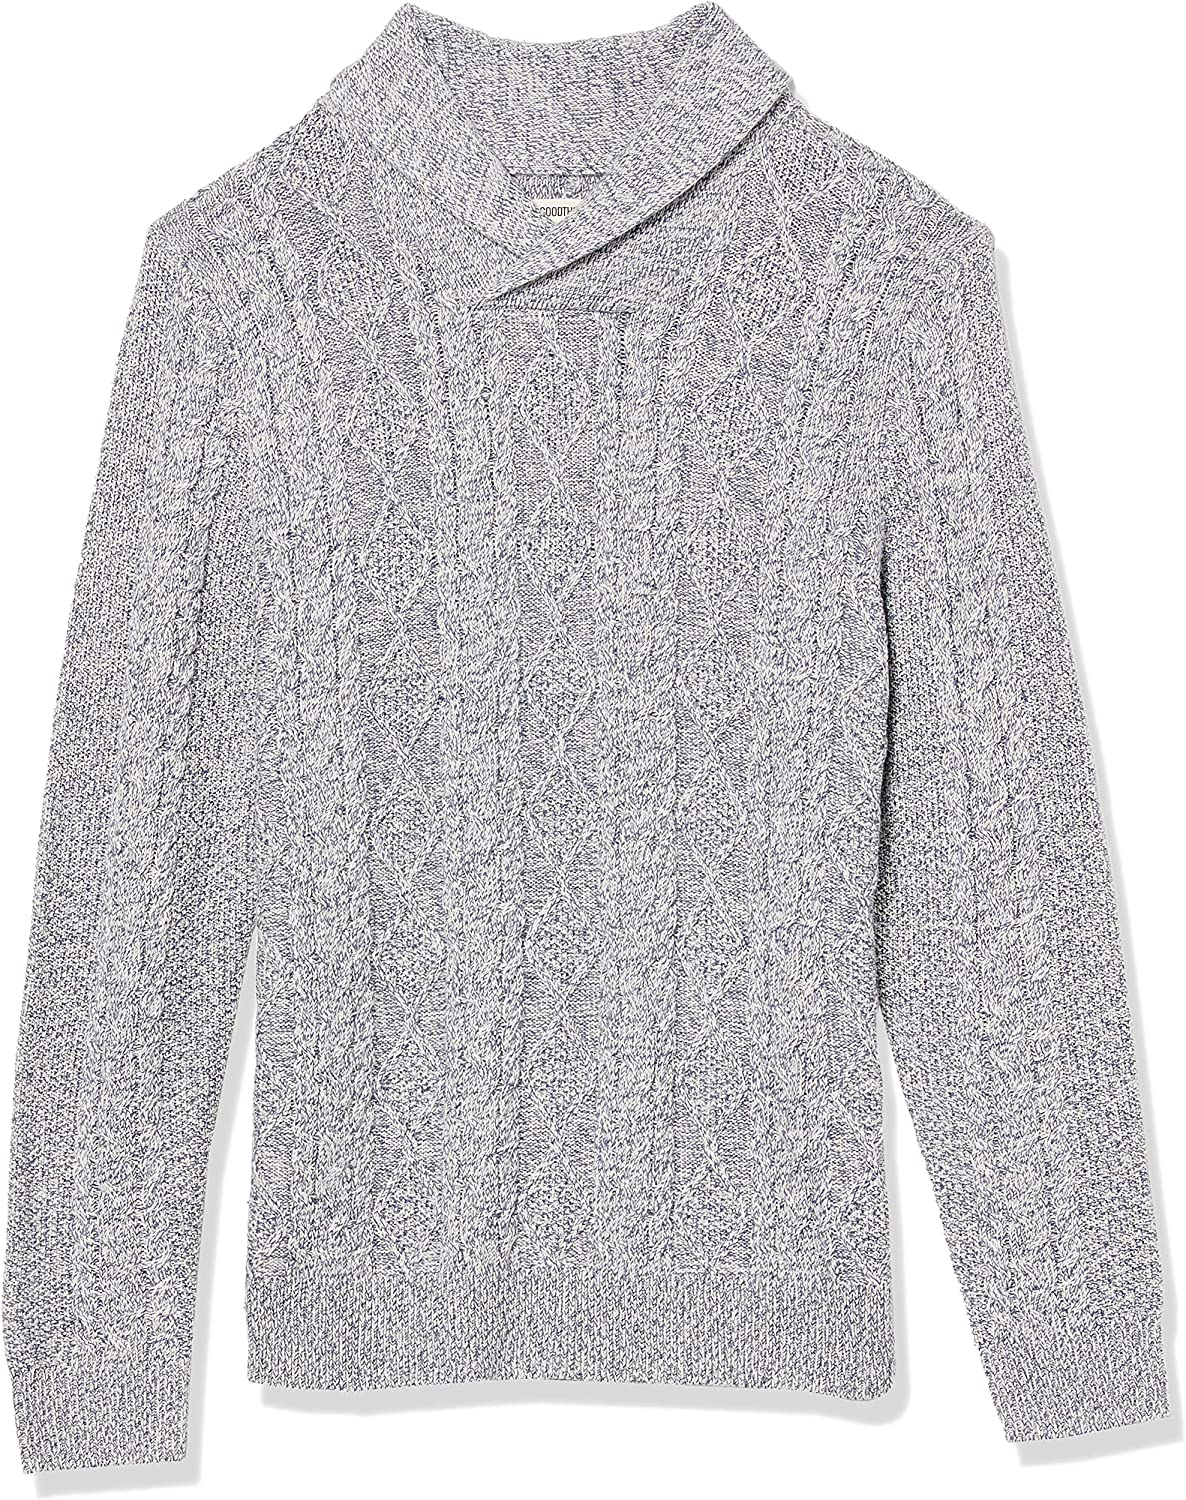 Amazon Brand - Goodthreads Men's Supersoft Shawl Collar Cable Knit Pullover Sweater